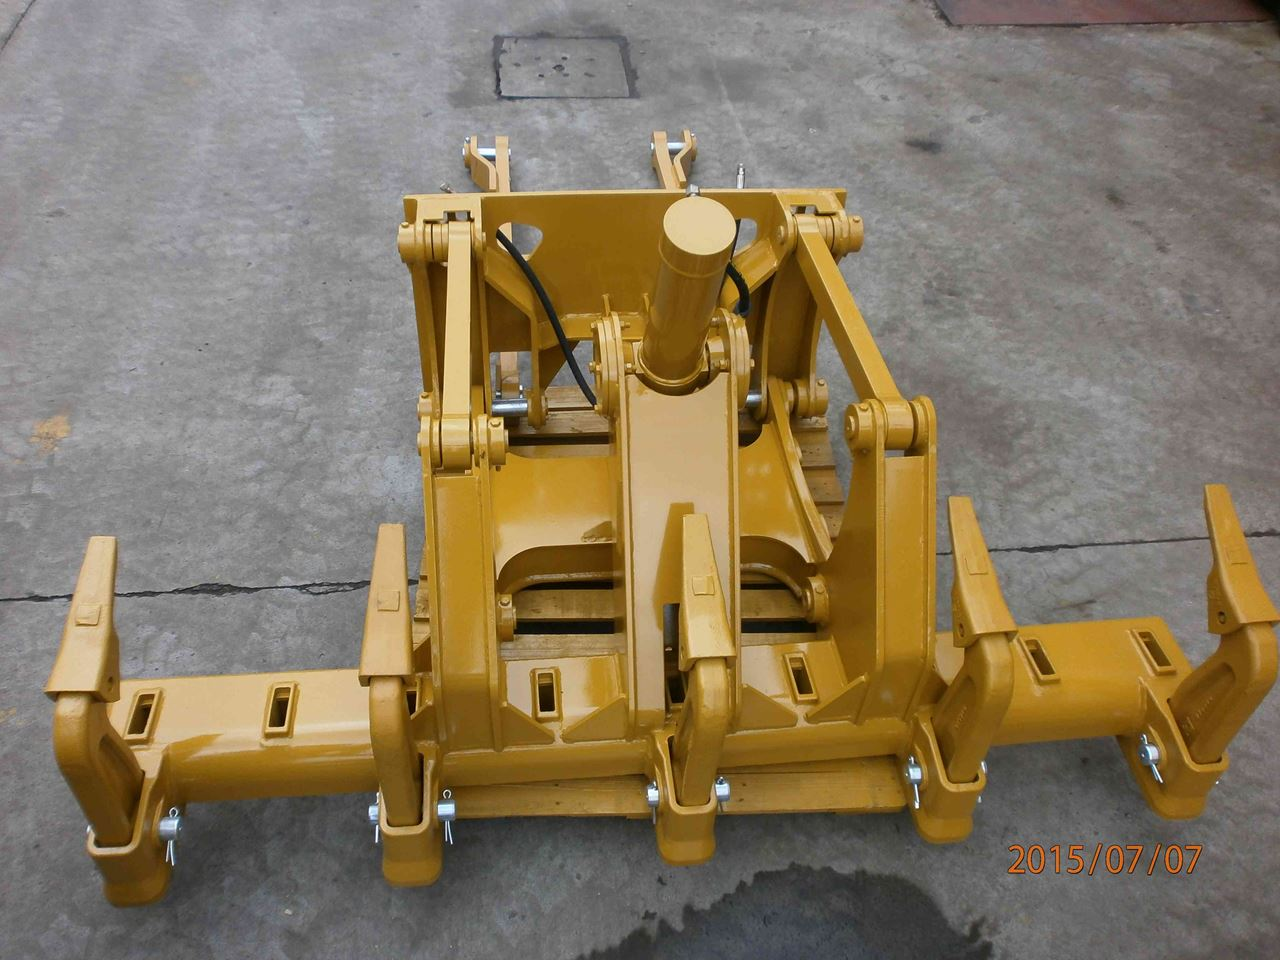 Picture of Grader CAT 160M, 140M, 12M MS Rippers